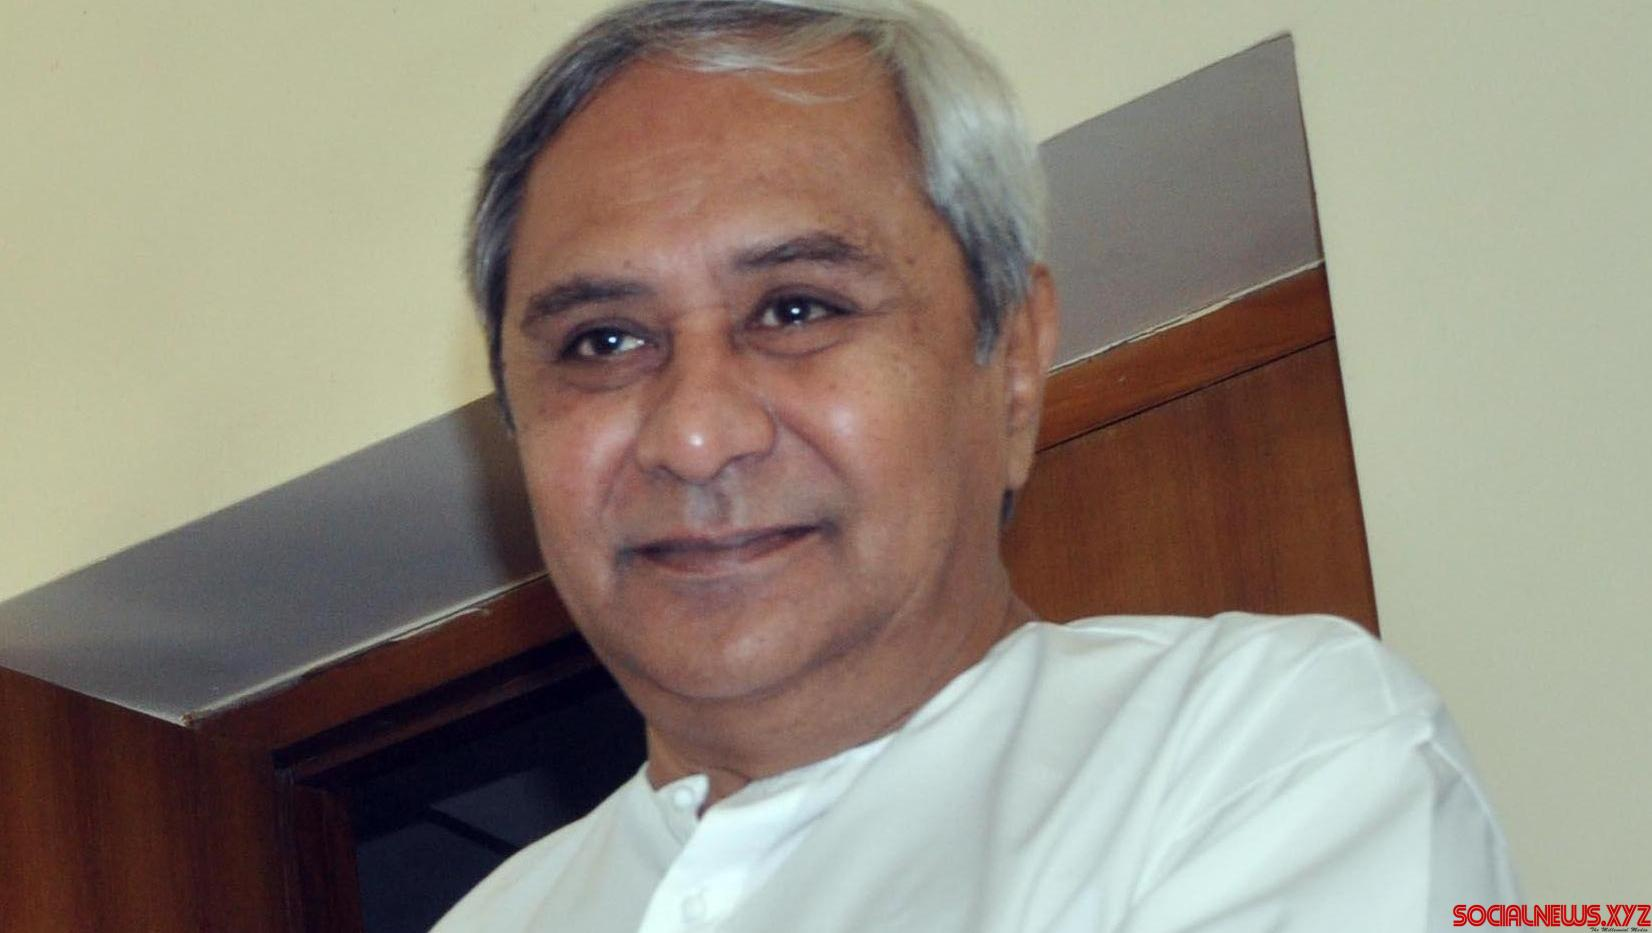 Odisha CM's resignation sought over Puri gang rape case